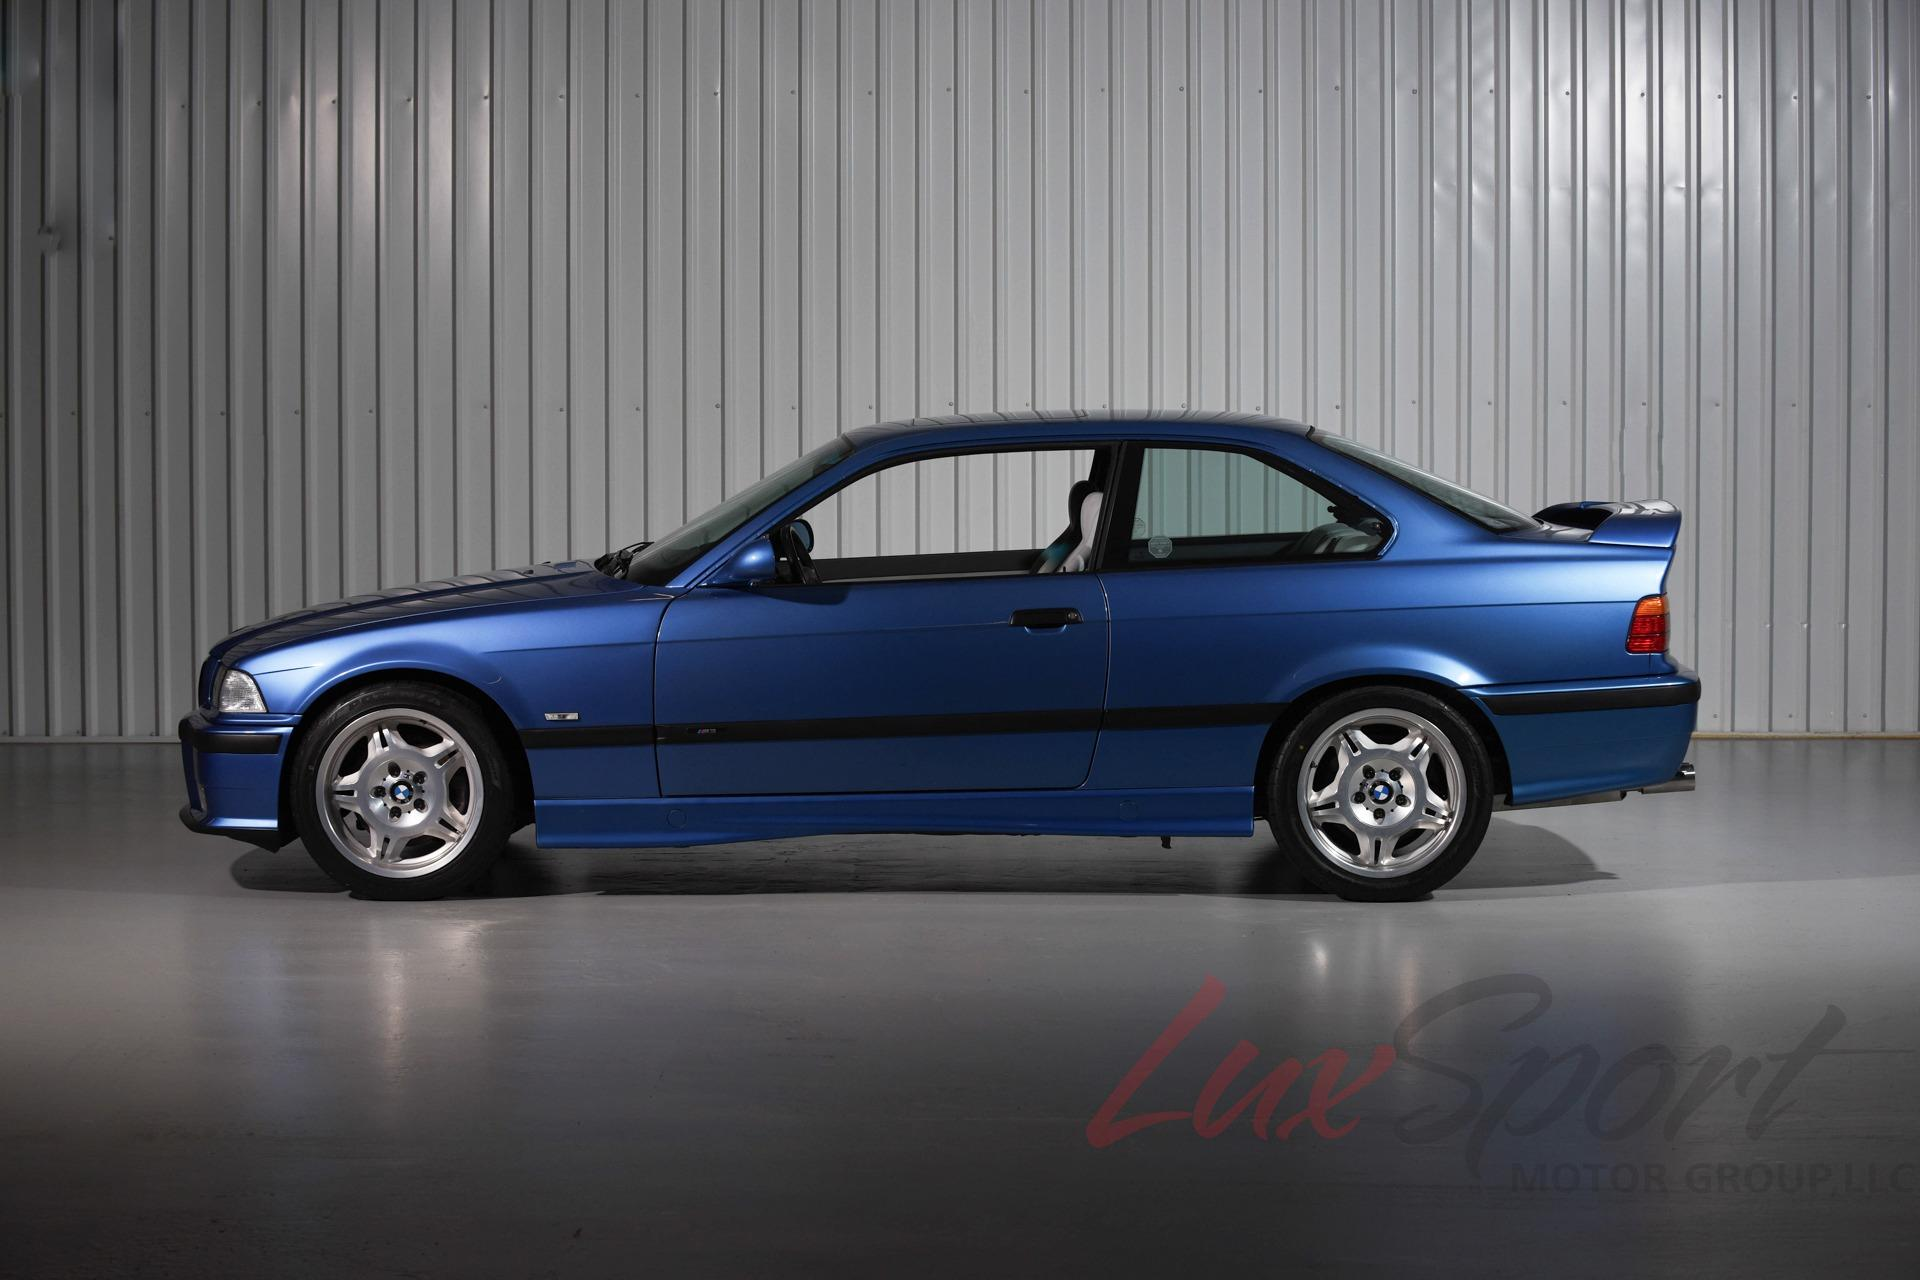 1997 bmw e36 m3 coupe stock 1997162 for sale near new hyde park ny ny bmw dealer. Black Bedroom Furniture Sets. Home Design Ideas